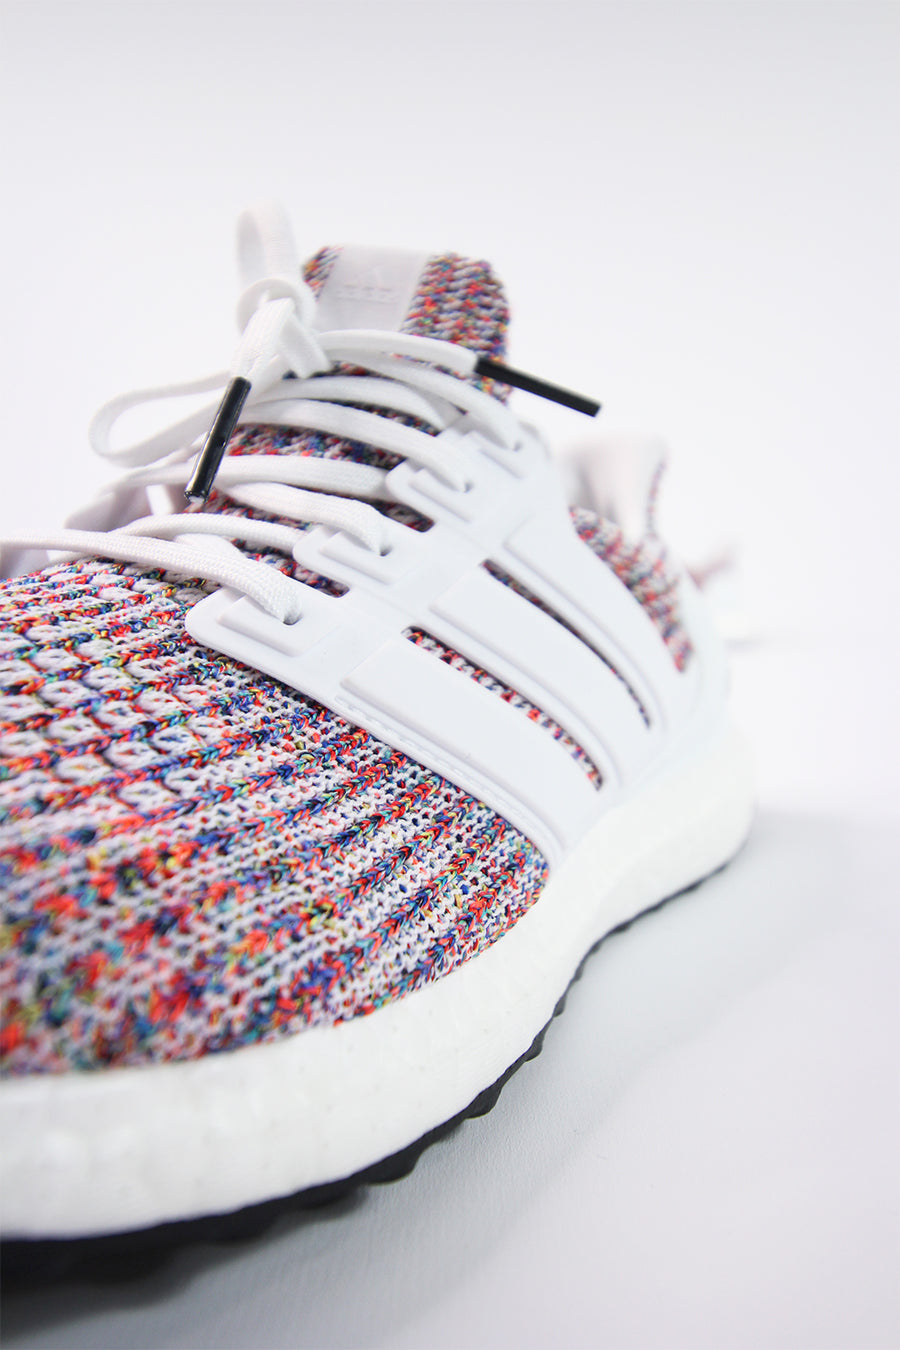 Adidas - Ultraboost (FTW White / FTW White / Conavy) CM8111